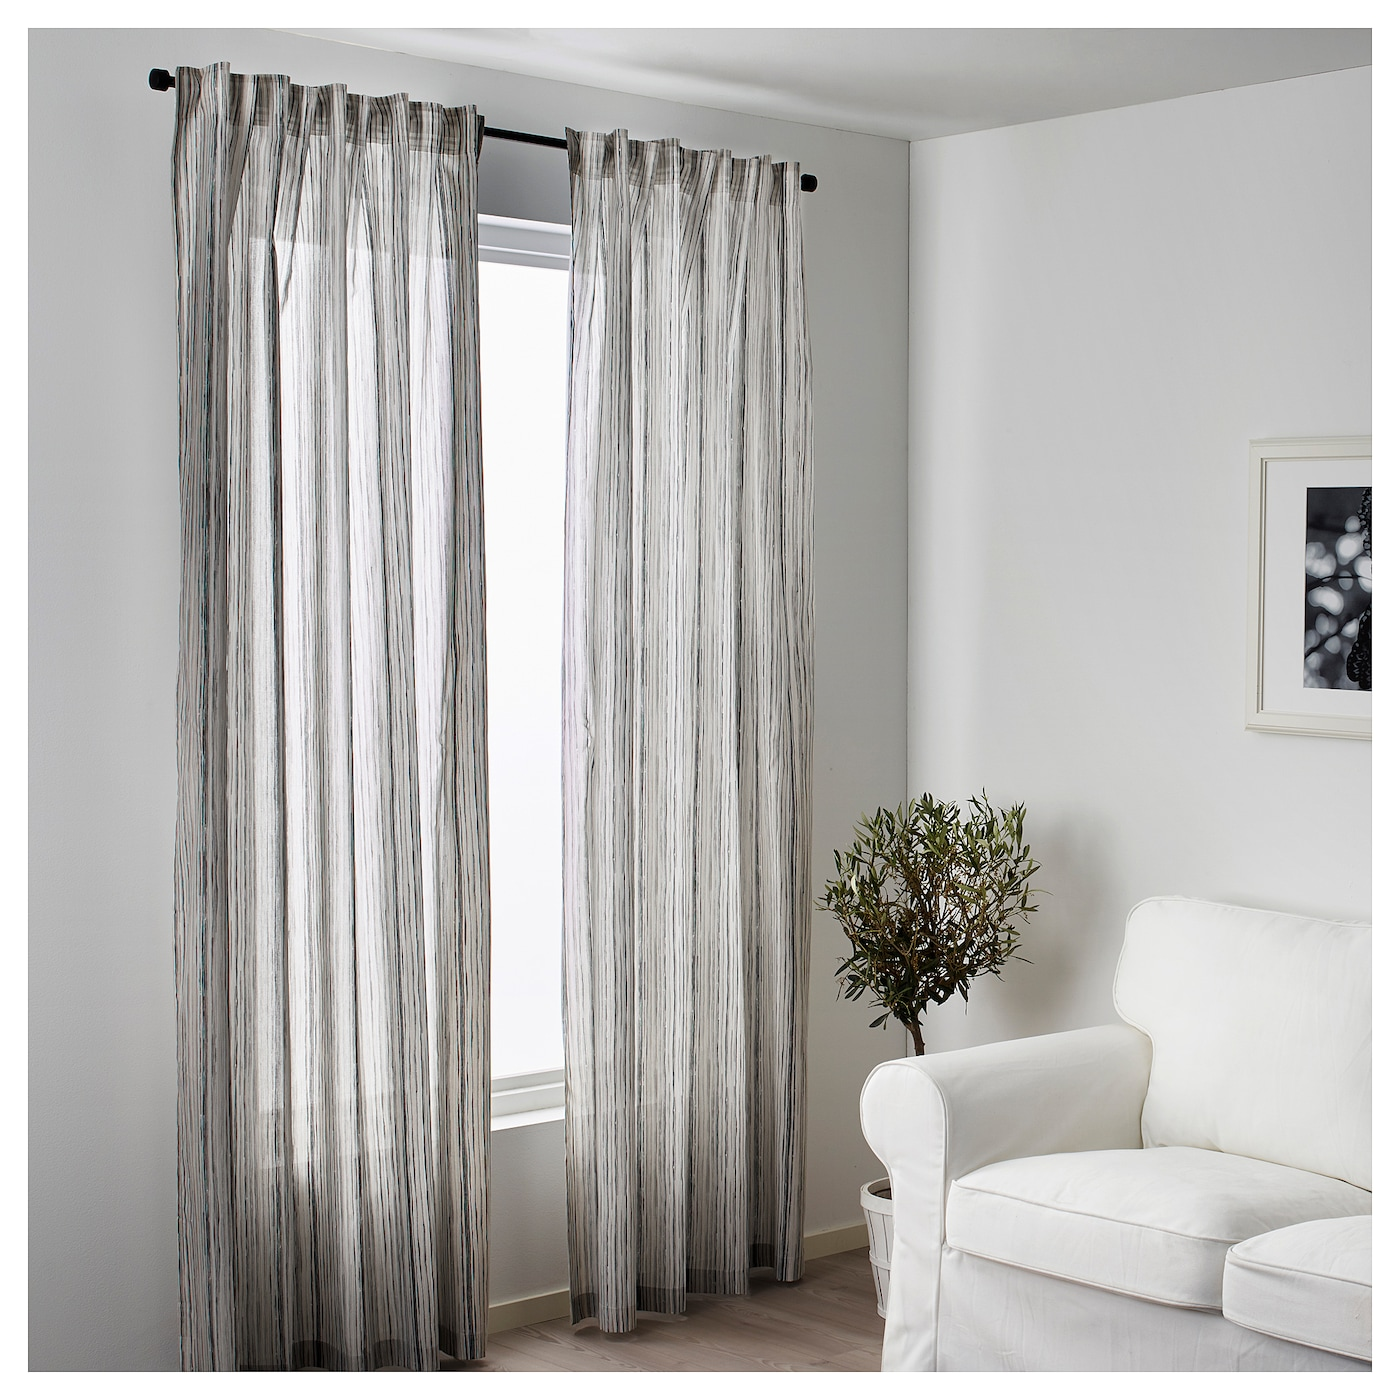 IKEA DAGRUN curtains, 1 pair The curtains can be used on a curtain rod or a curtain track.